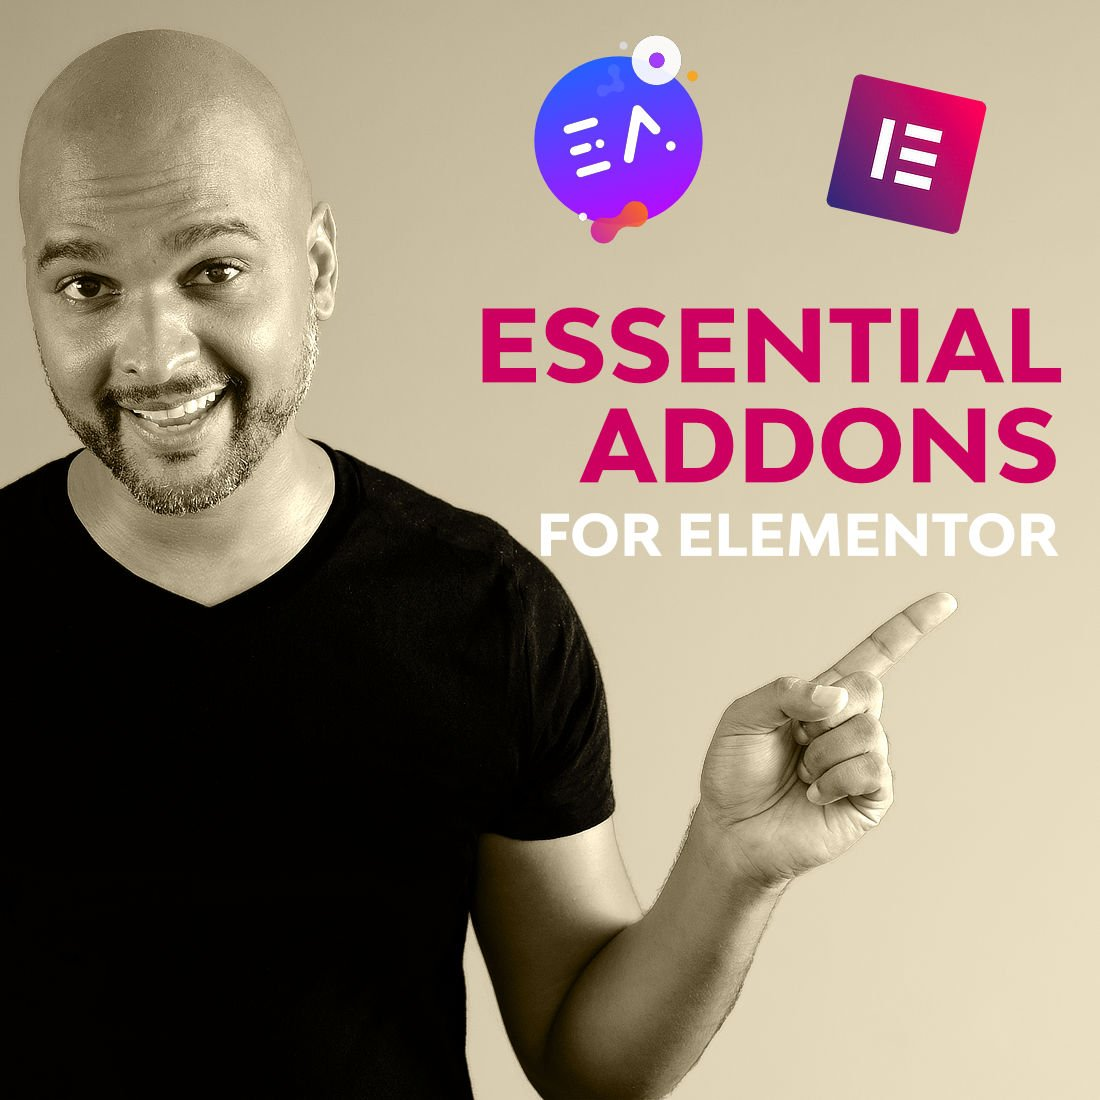 essentialaddons hashtag on Twitter